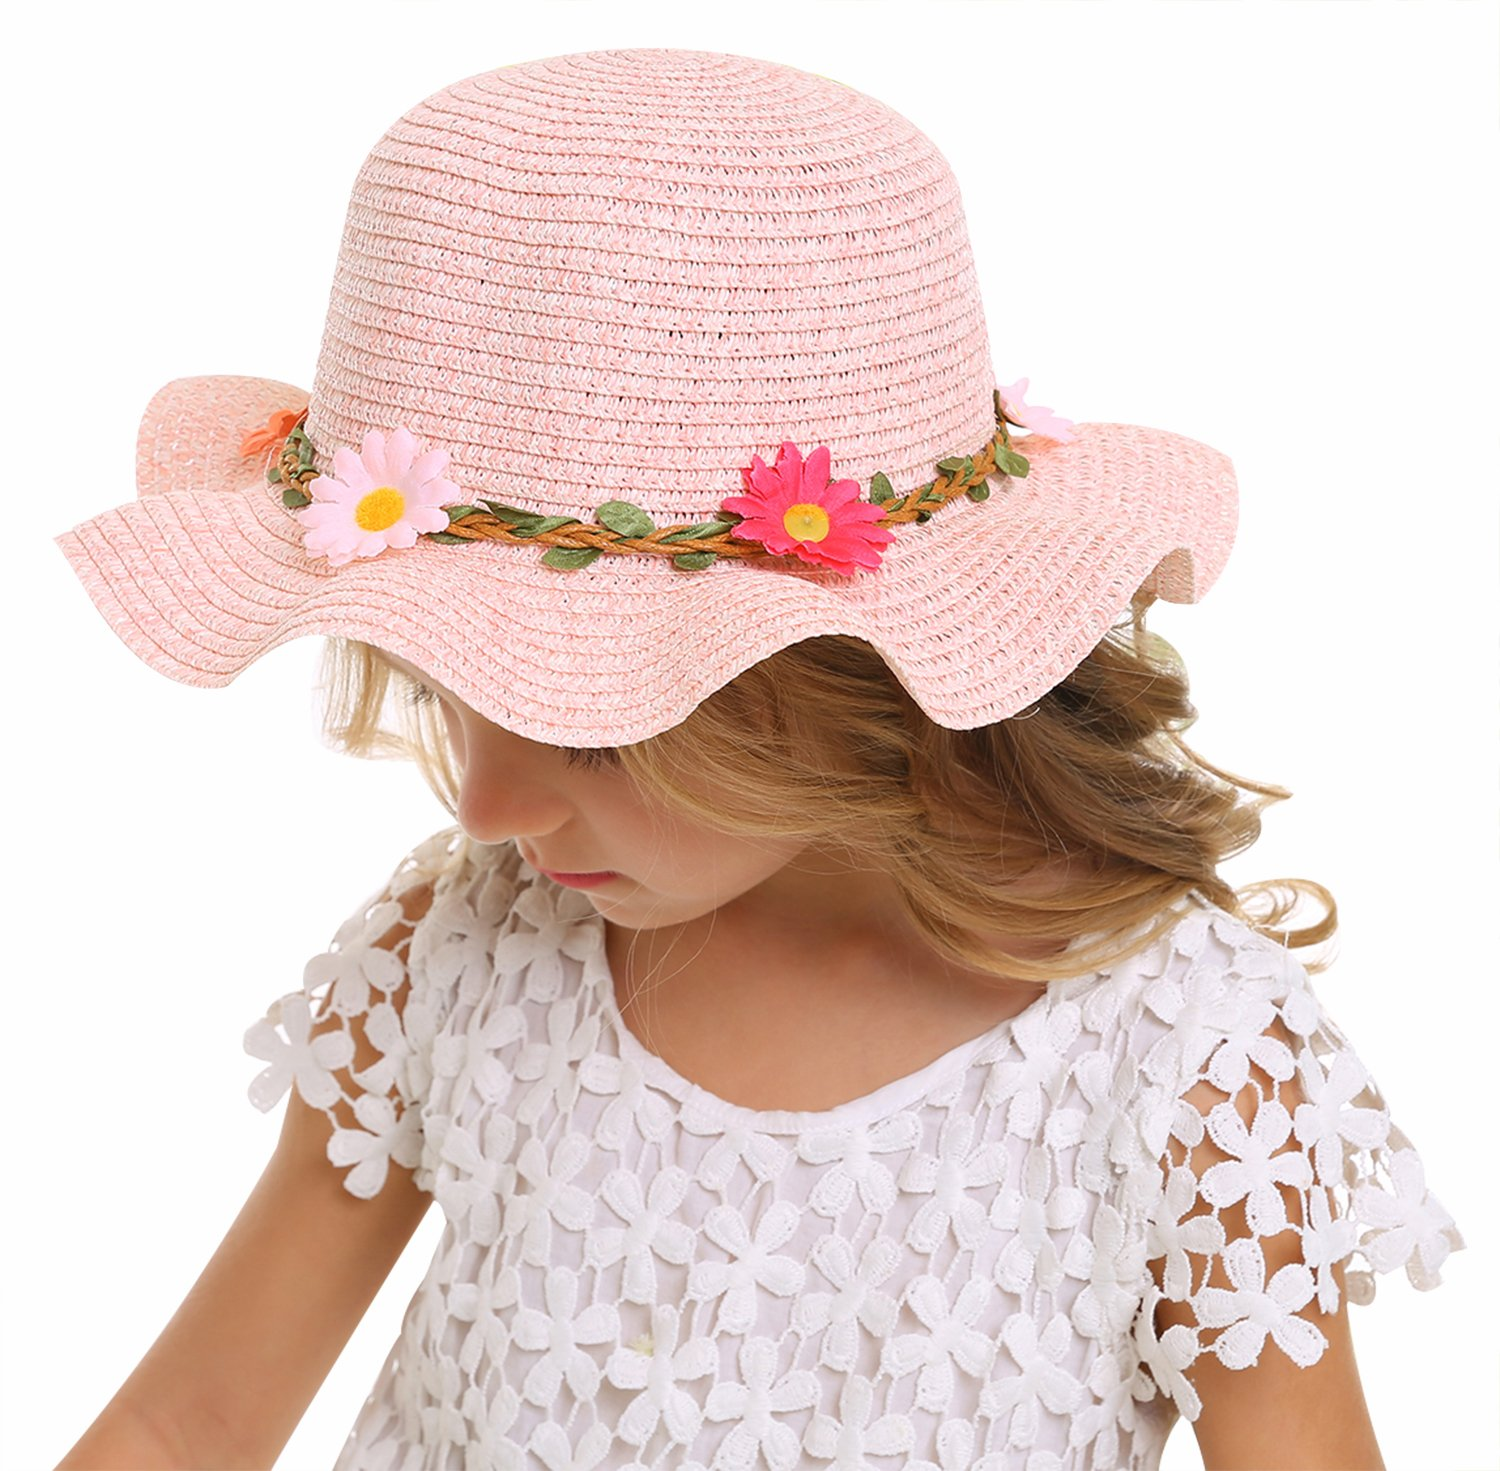 Kids Multi-Colors Large Brim Flower Beach Sun Hats BeigeYellow ZLM17040021